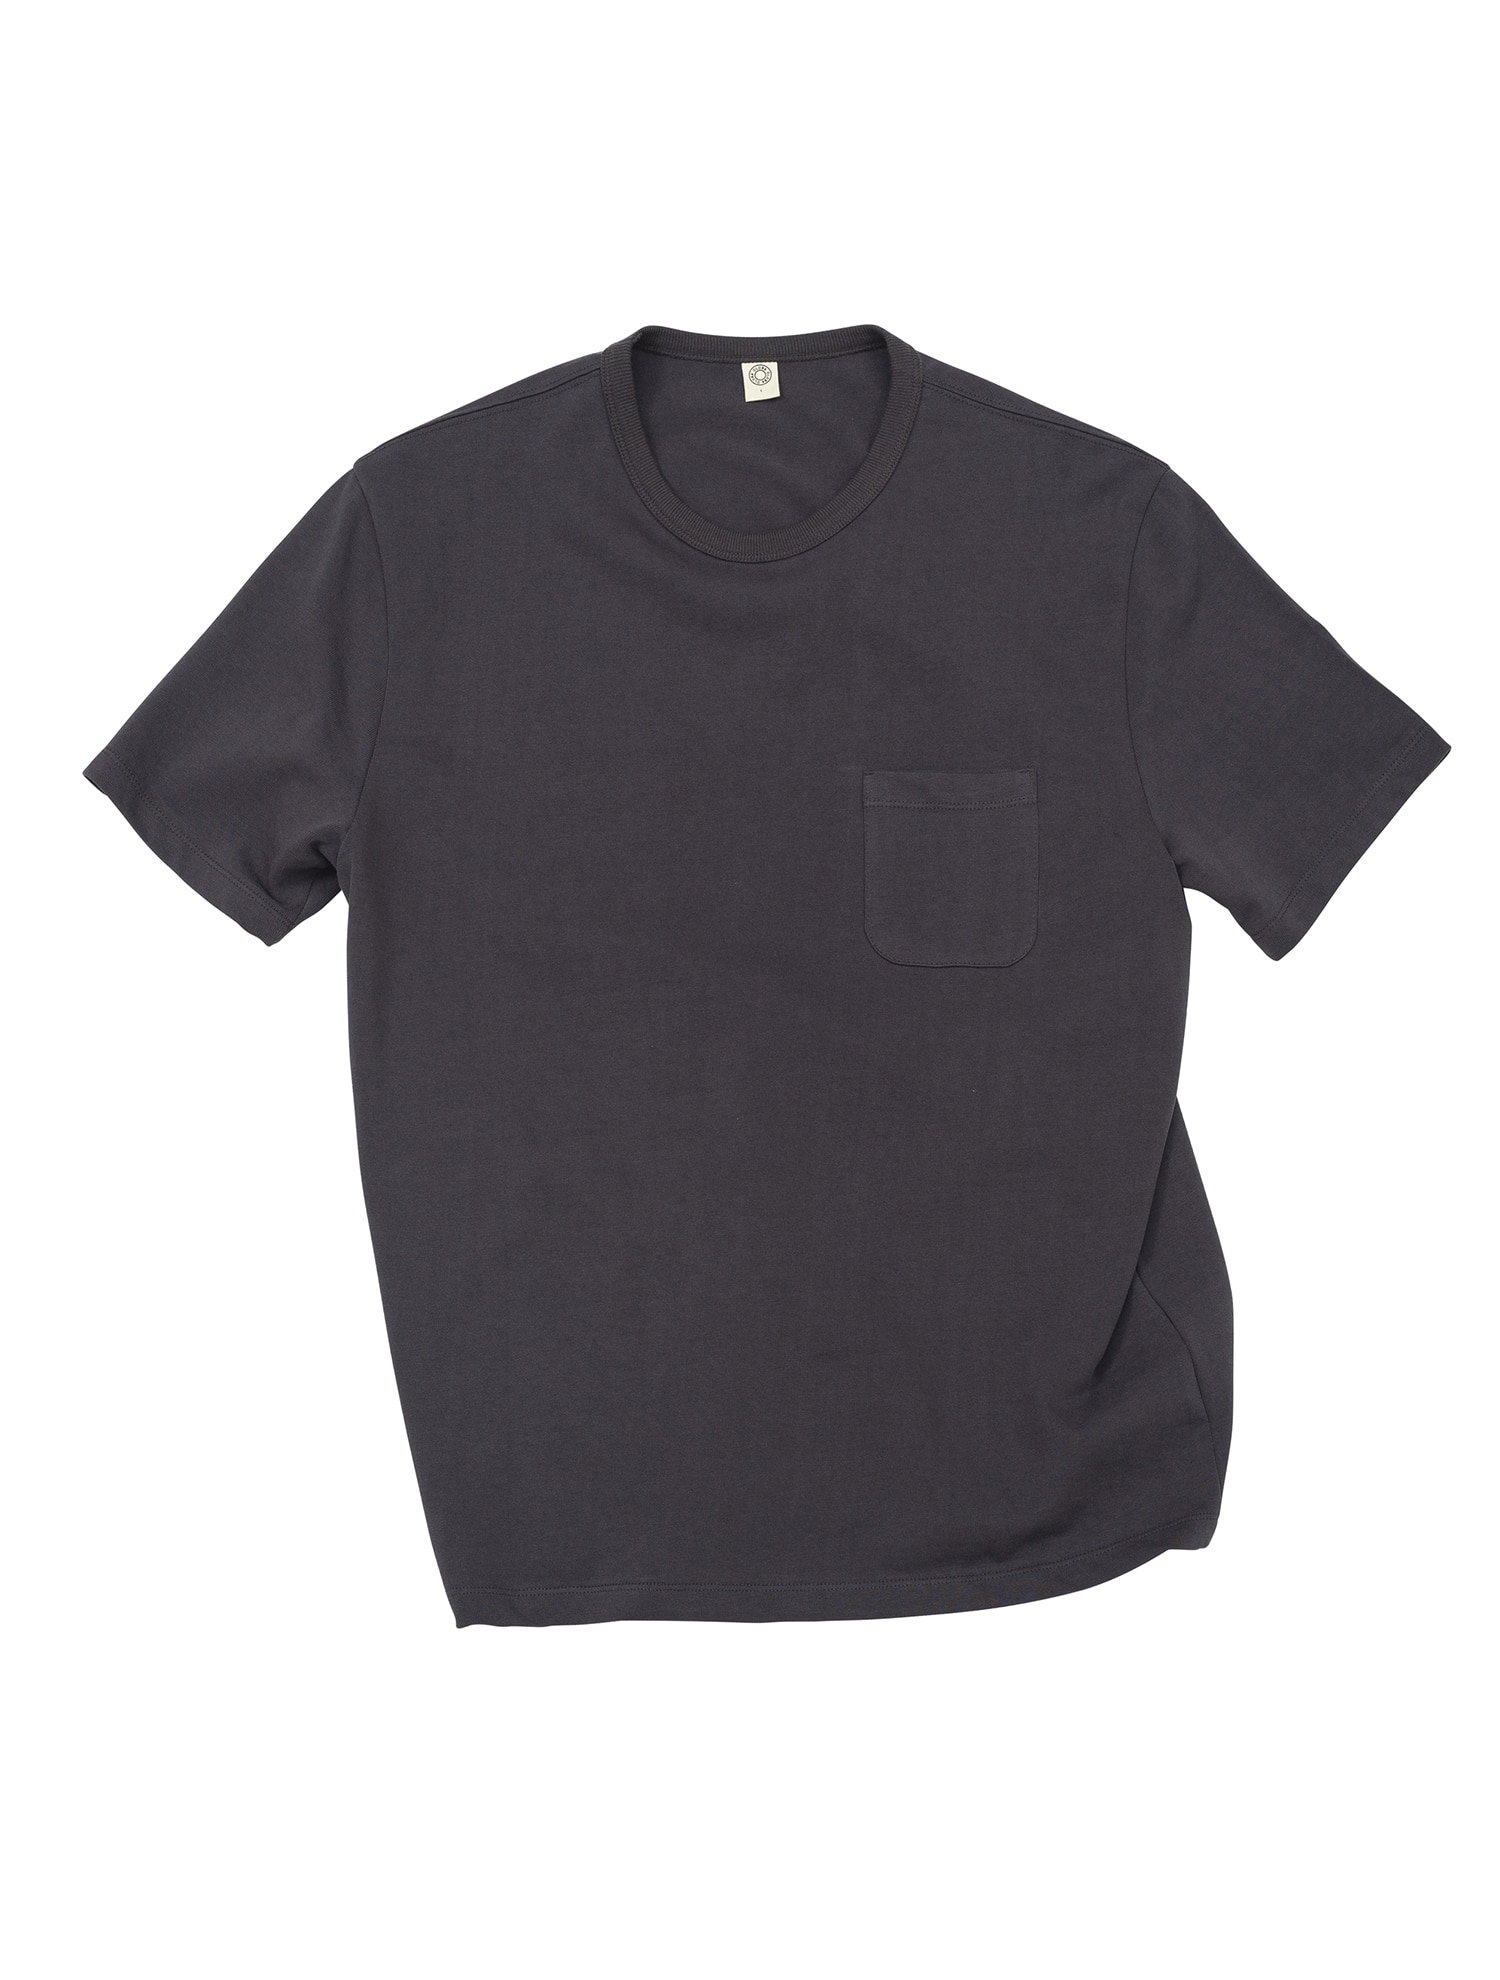 [올드비] GEN COTTON CREWN ECK T-SHIRT CHARCOAL GRAY